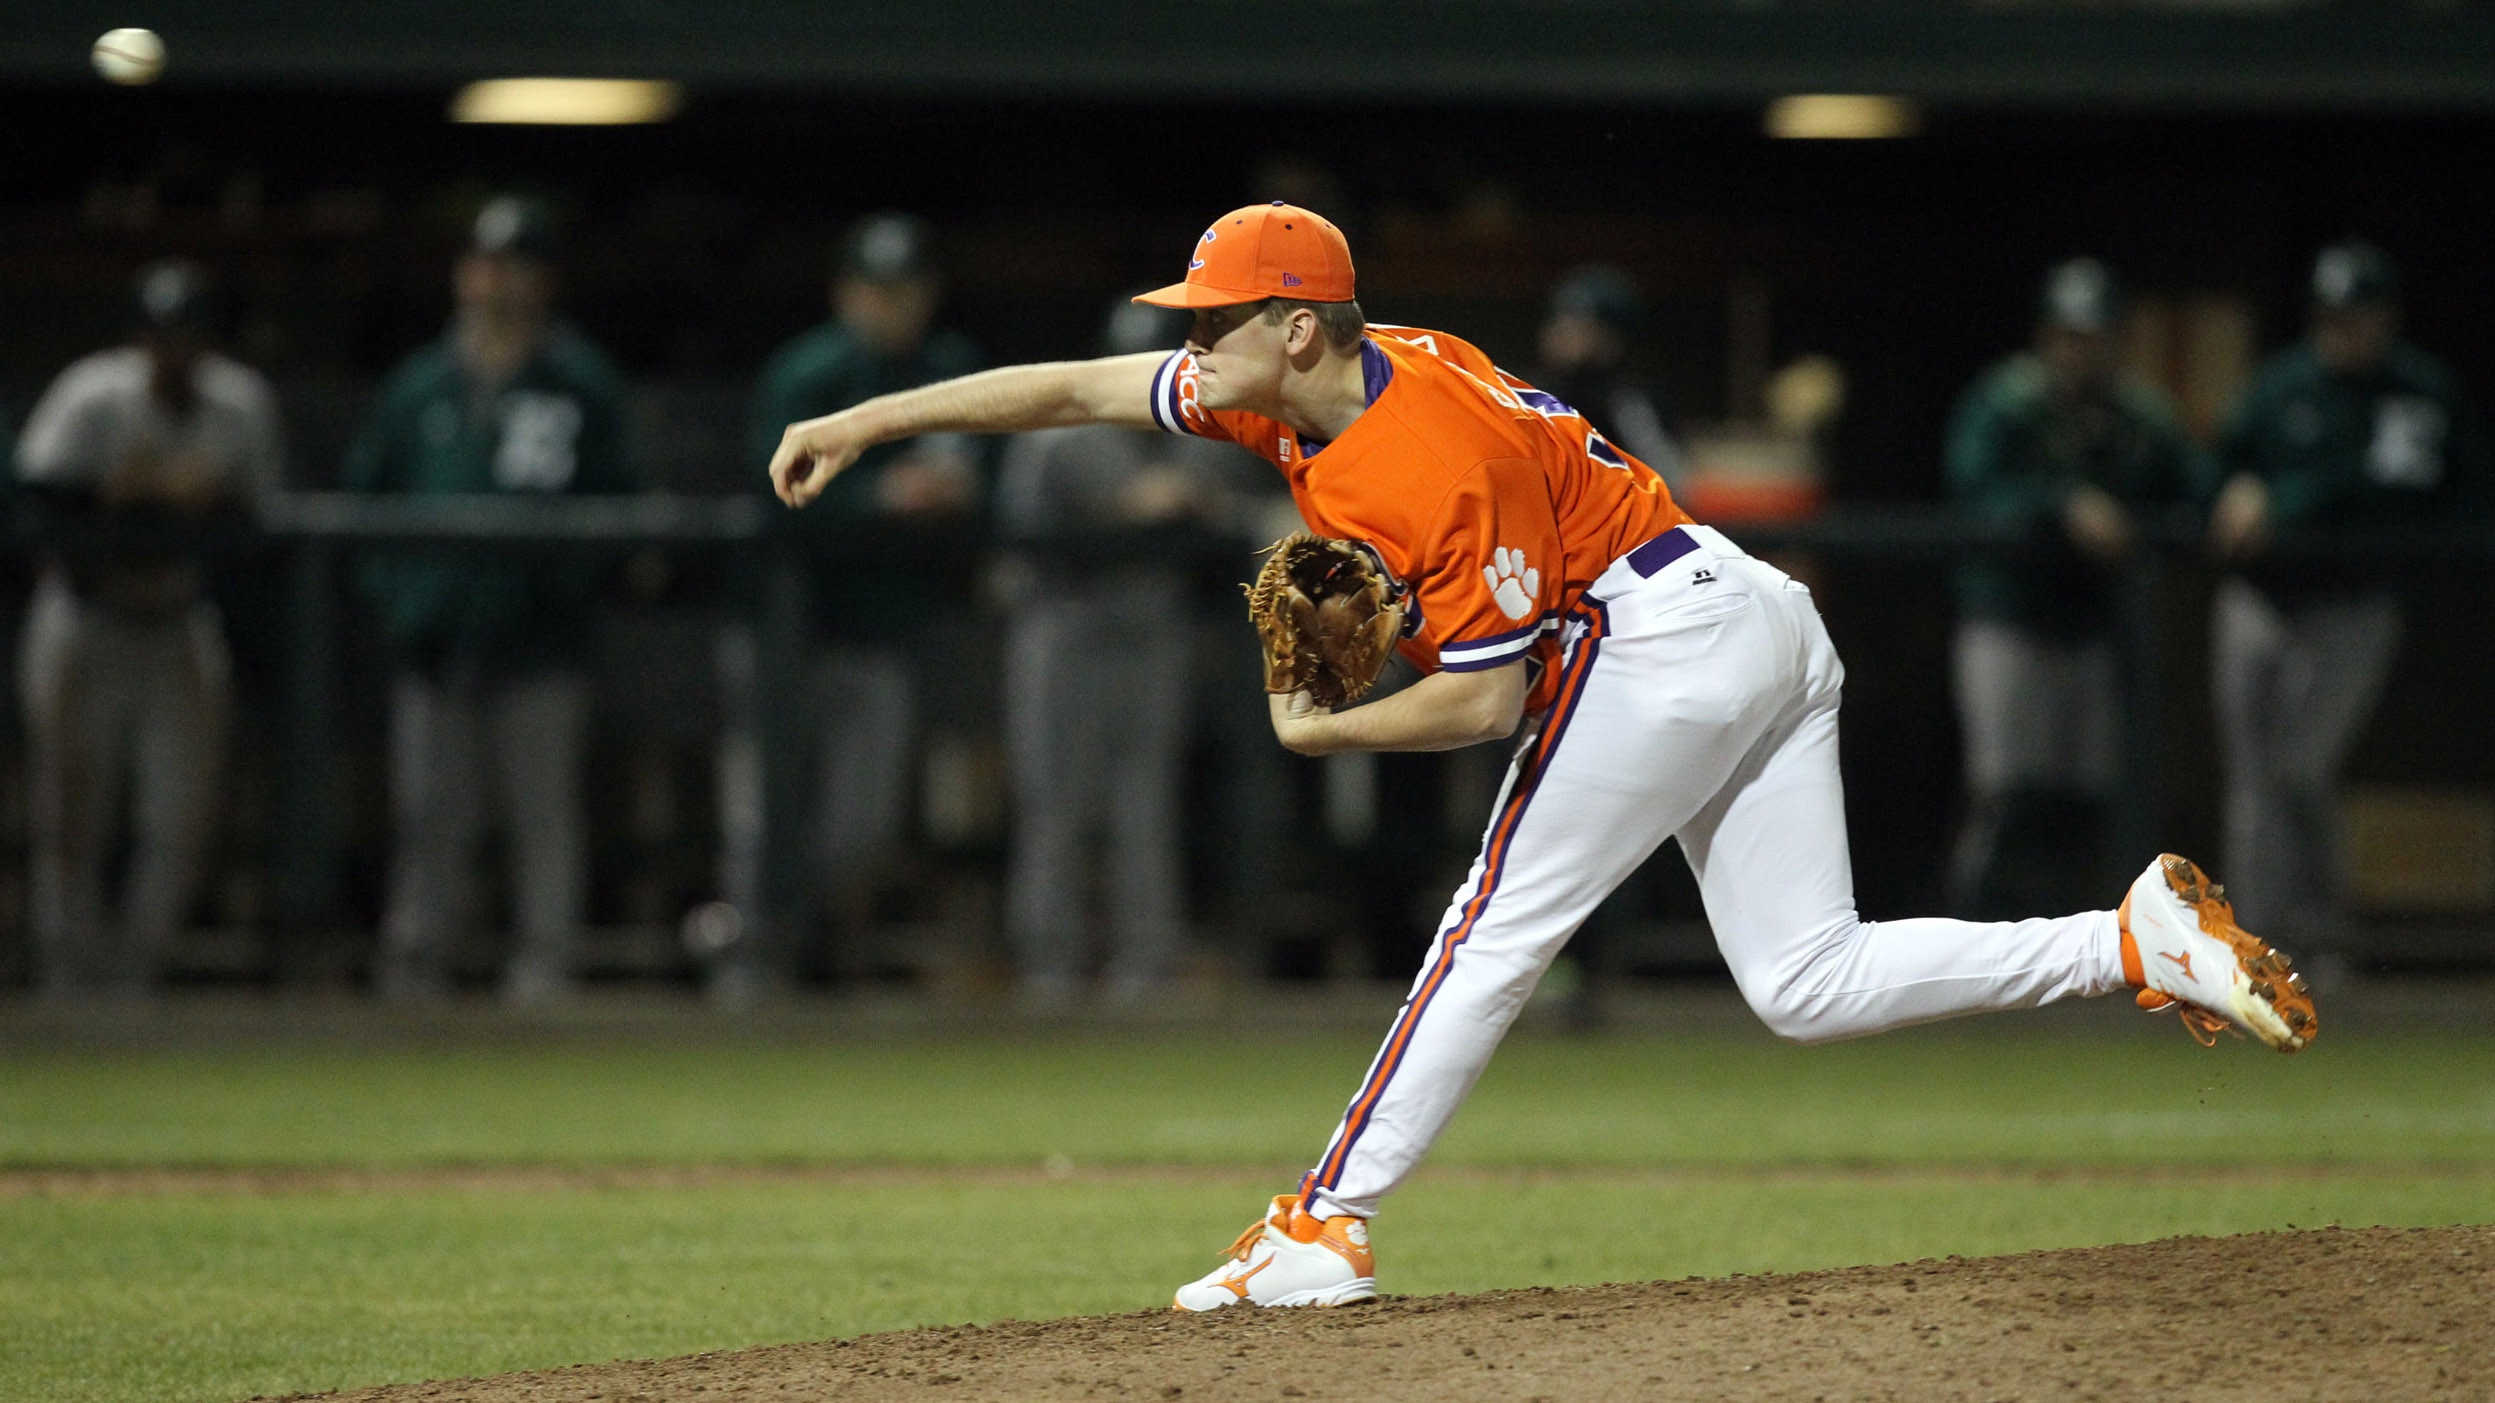 WATCH: Inside the Huddle with Clemson Baseball